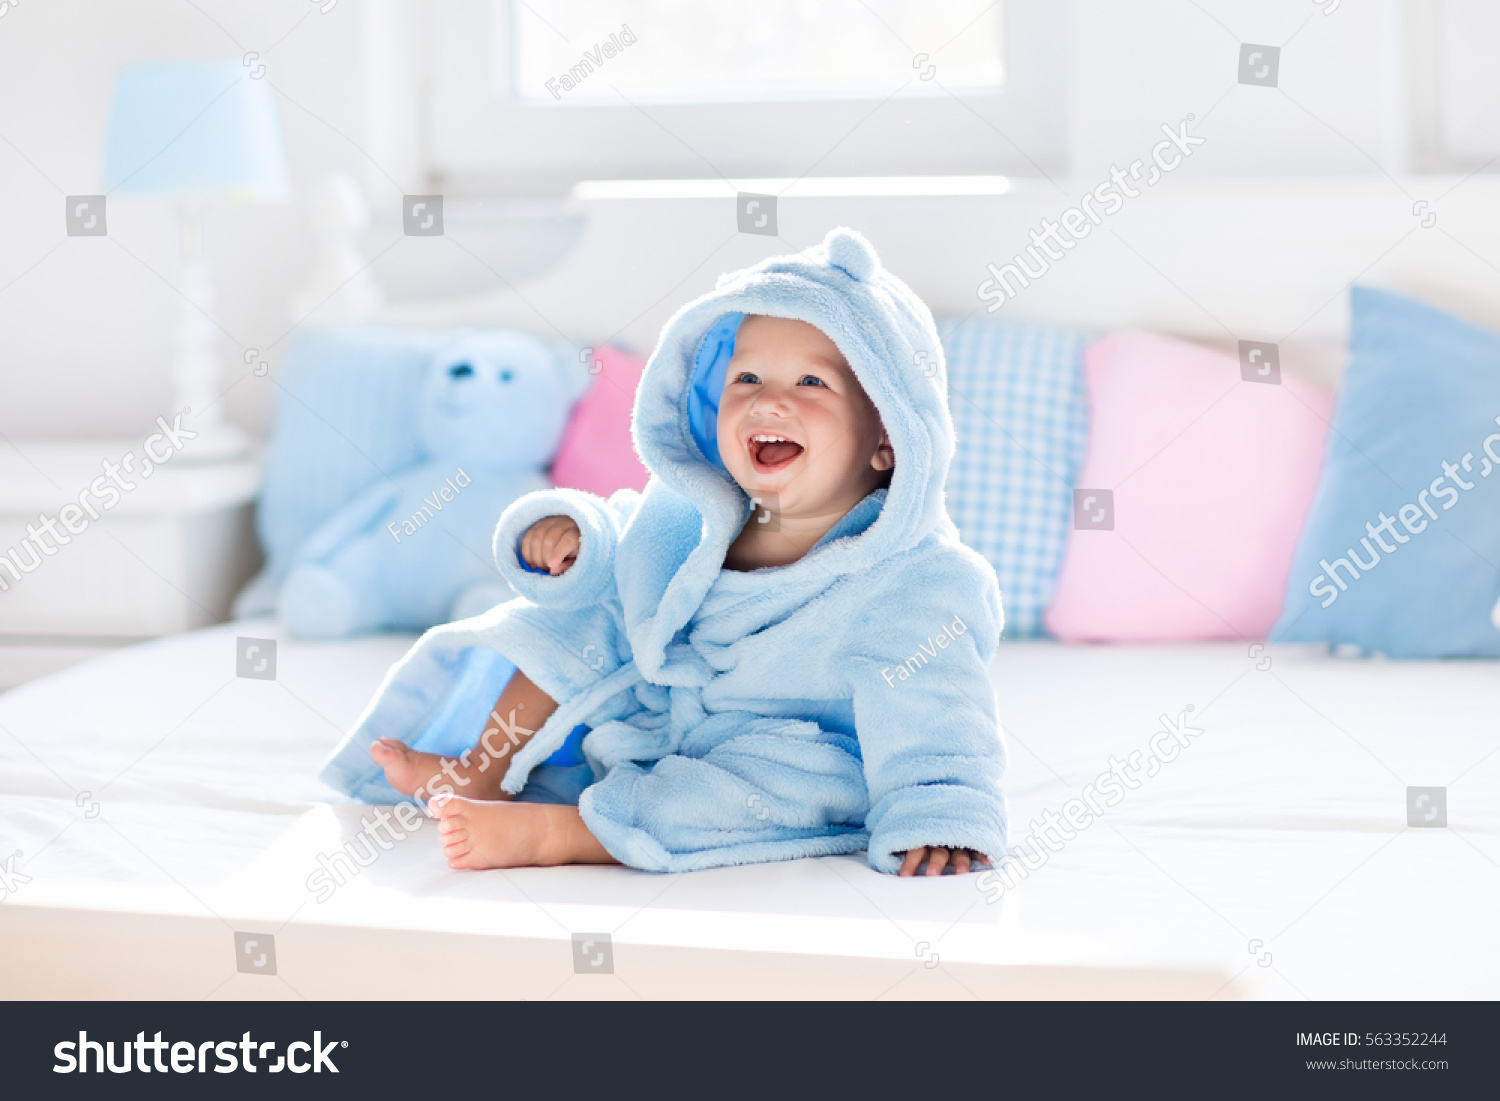 Cute Happy Laughing Baby Boy Soft Stock Photo (Royalty Free ...